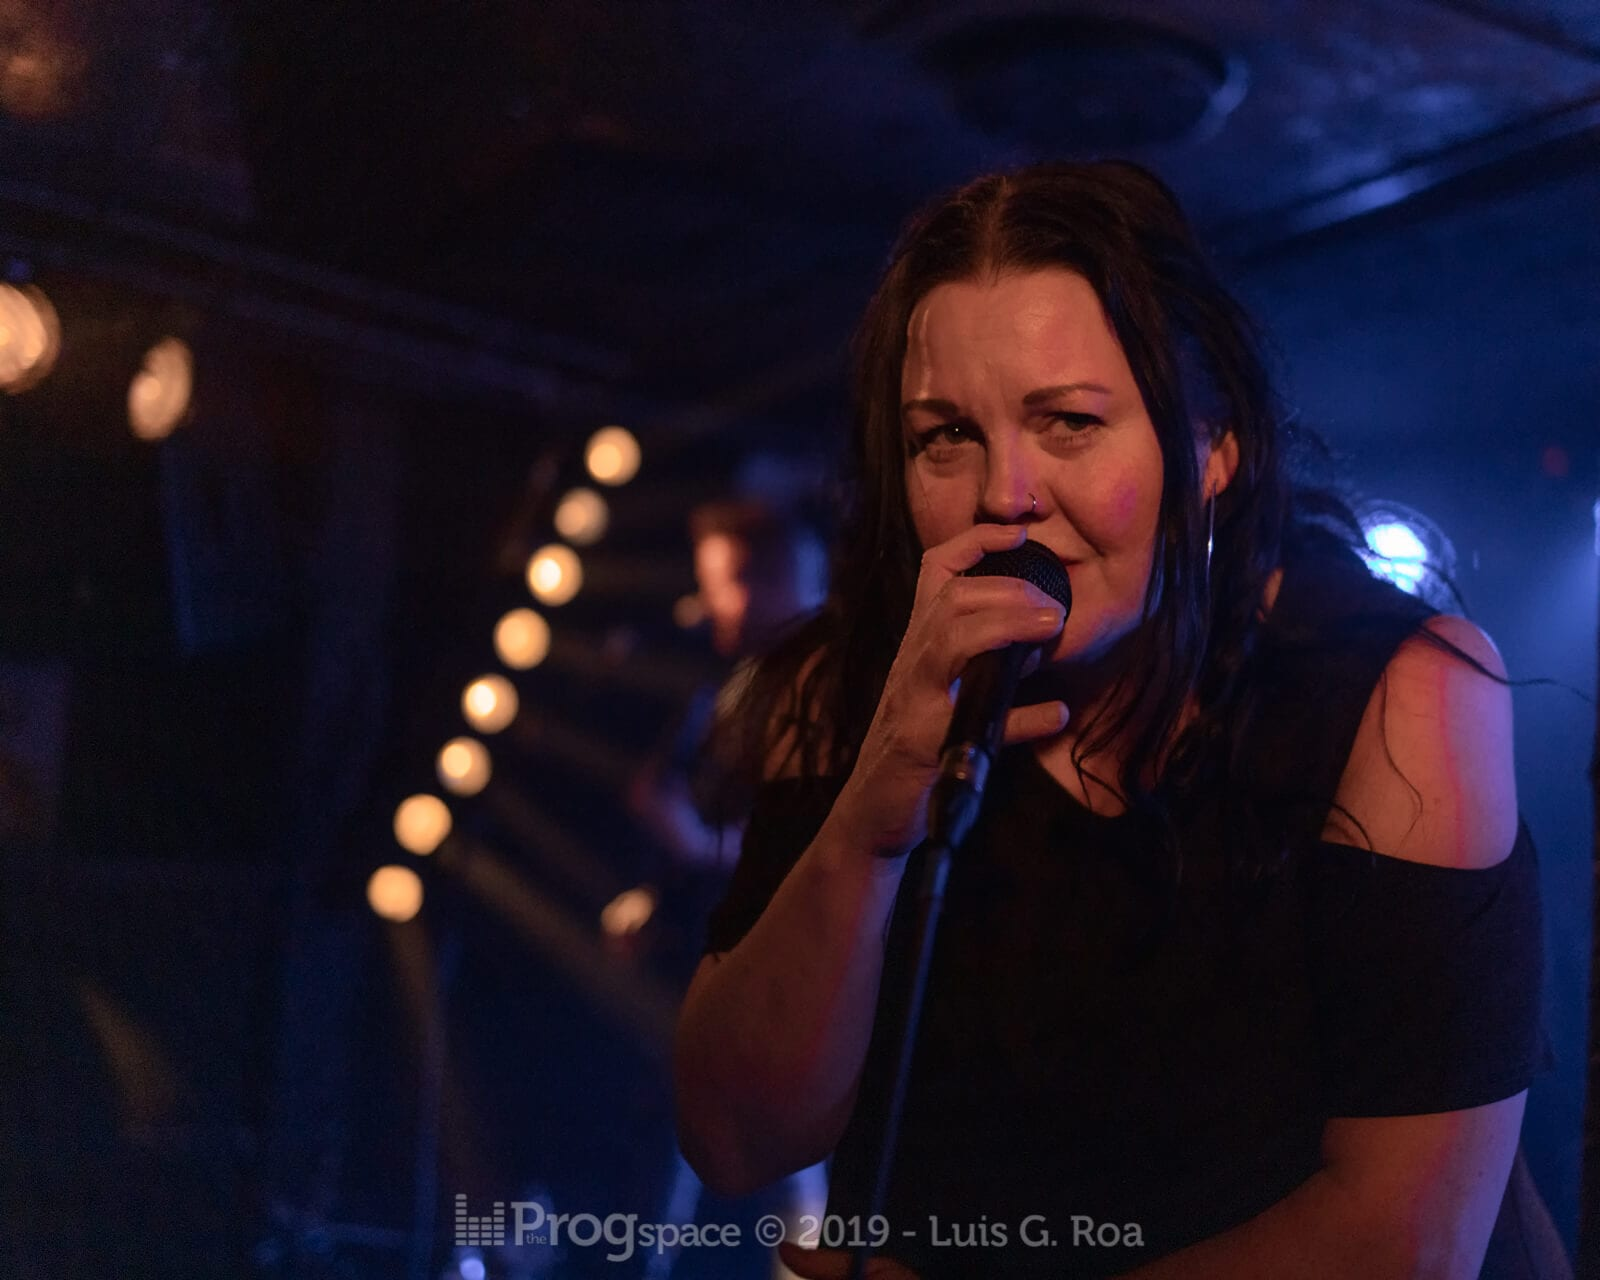 Madder Mortem live in Hamburg, 2 May 2019